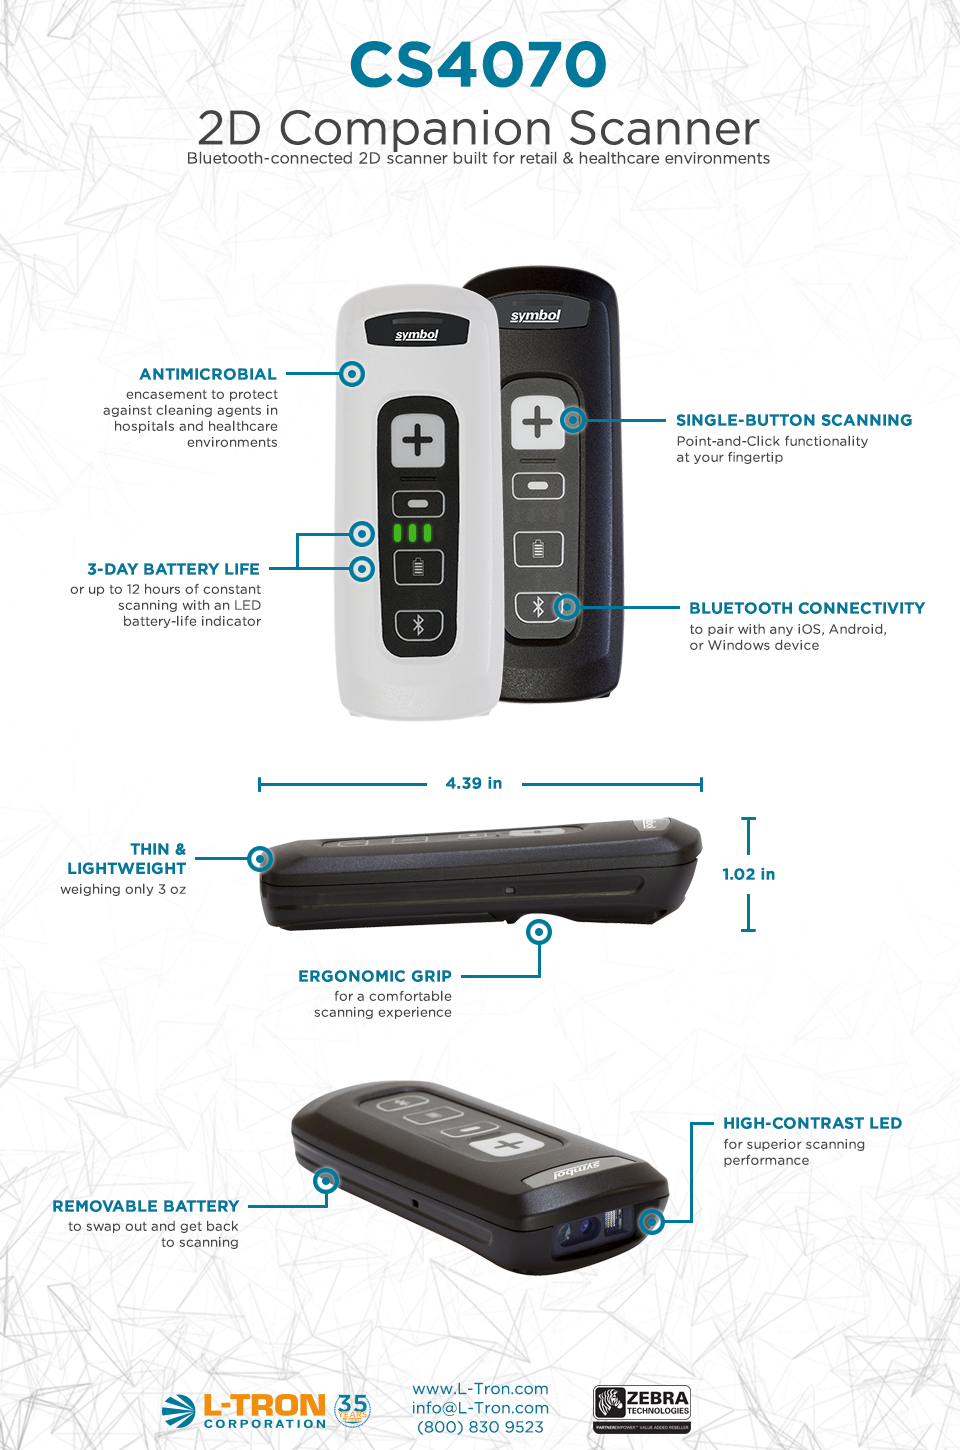 Cs4070 Companion Scanner Features Amp Benefits Infographic